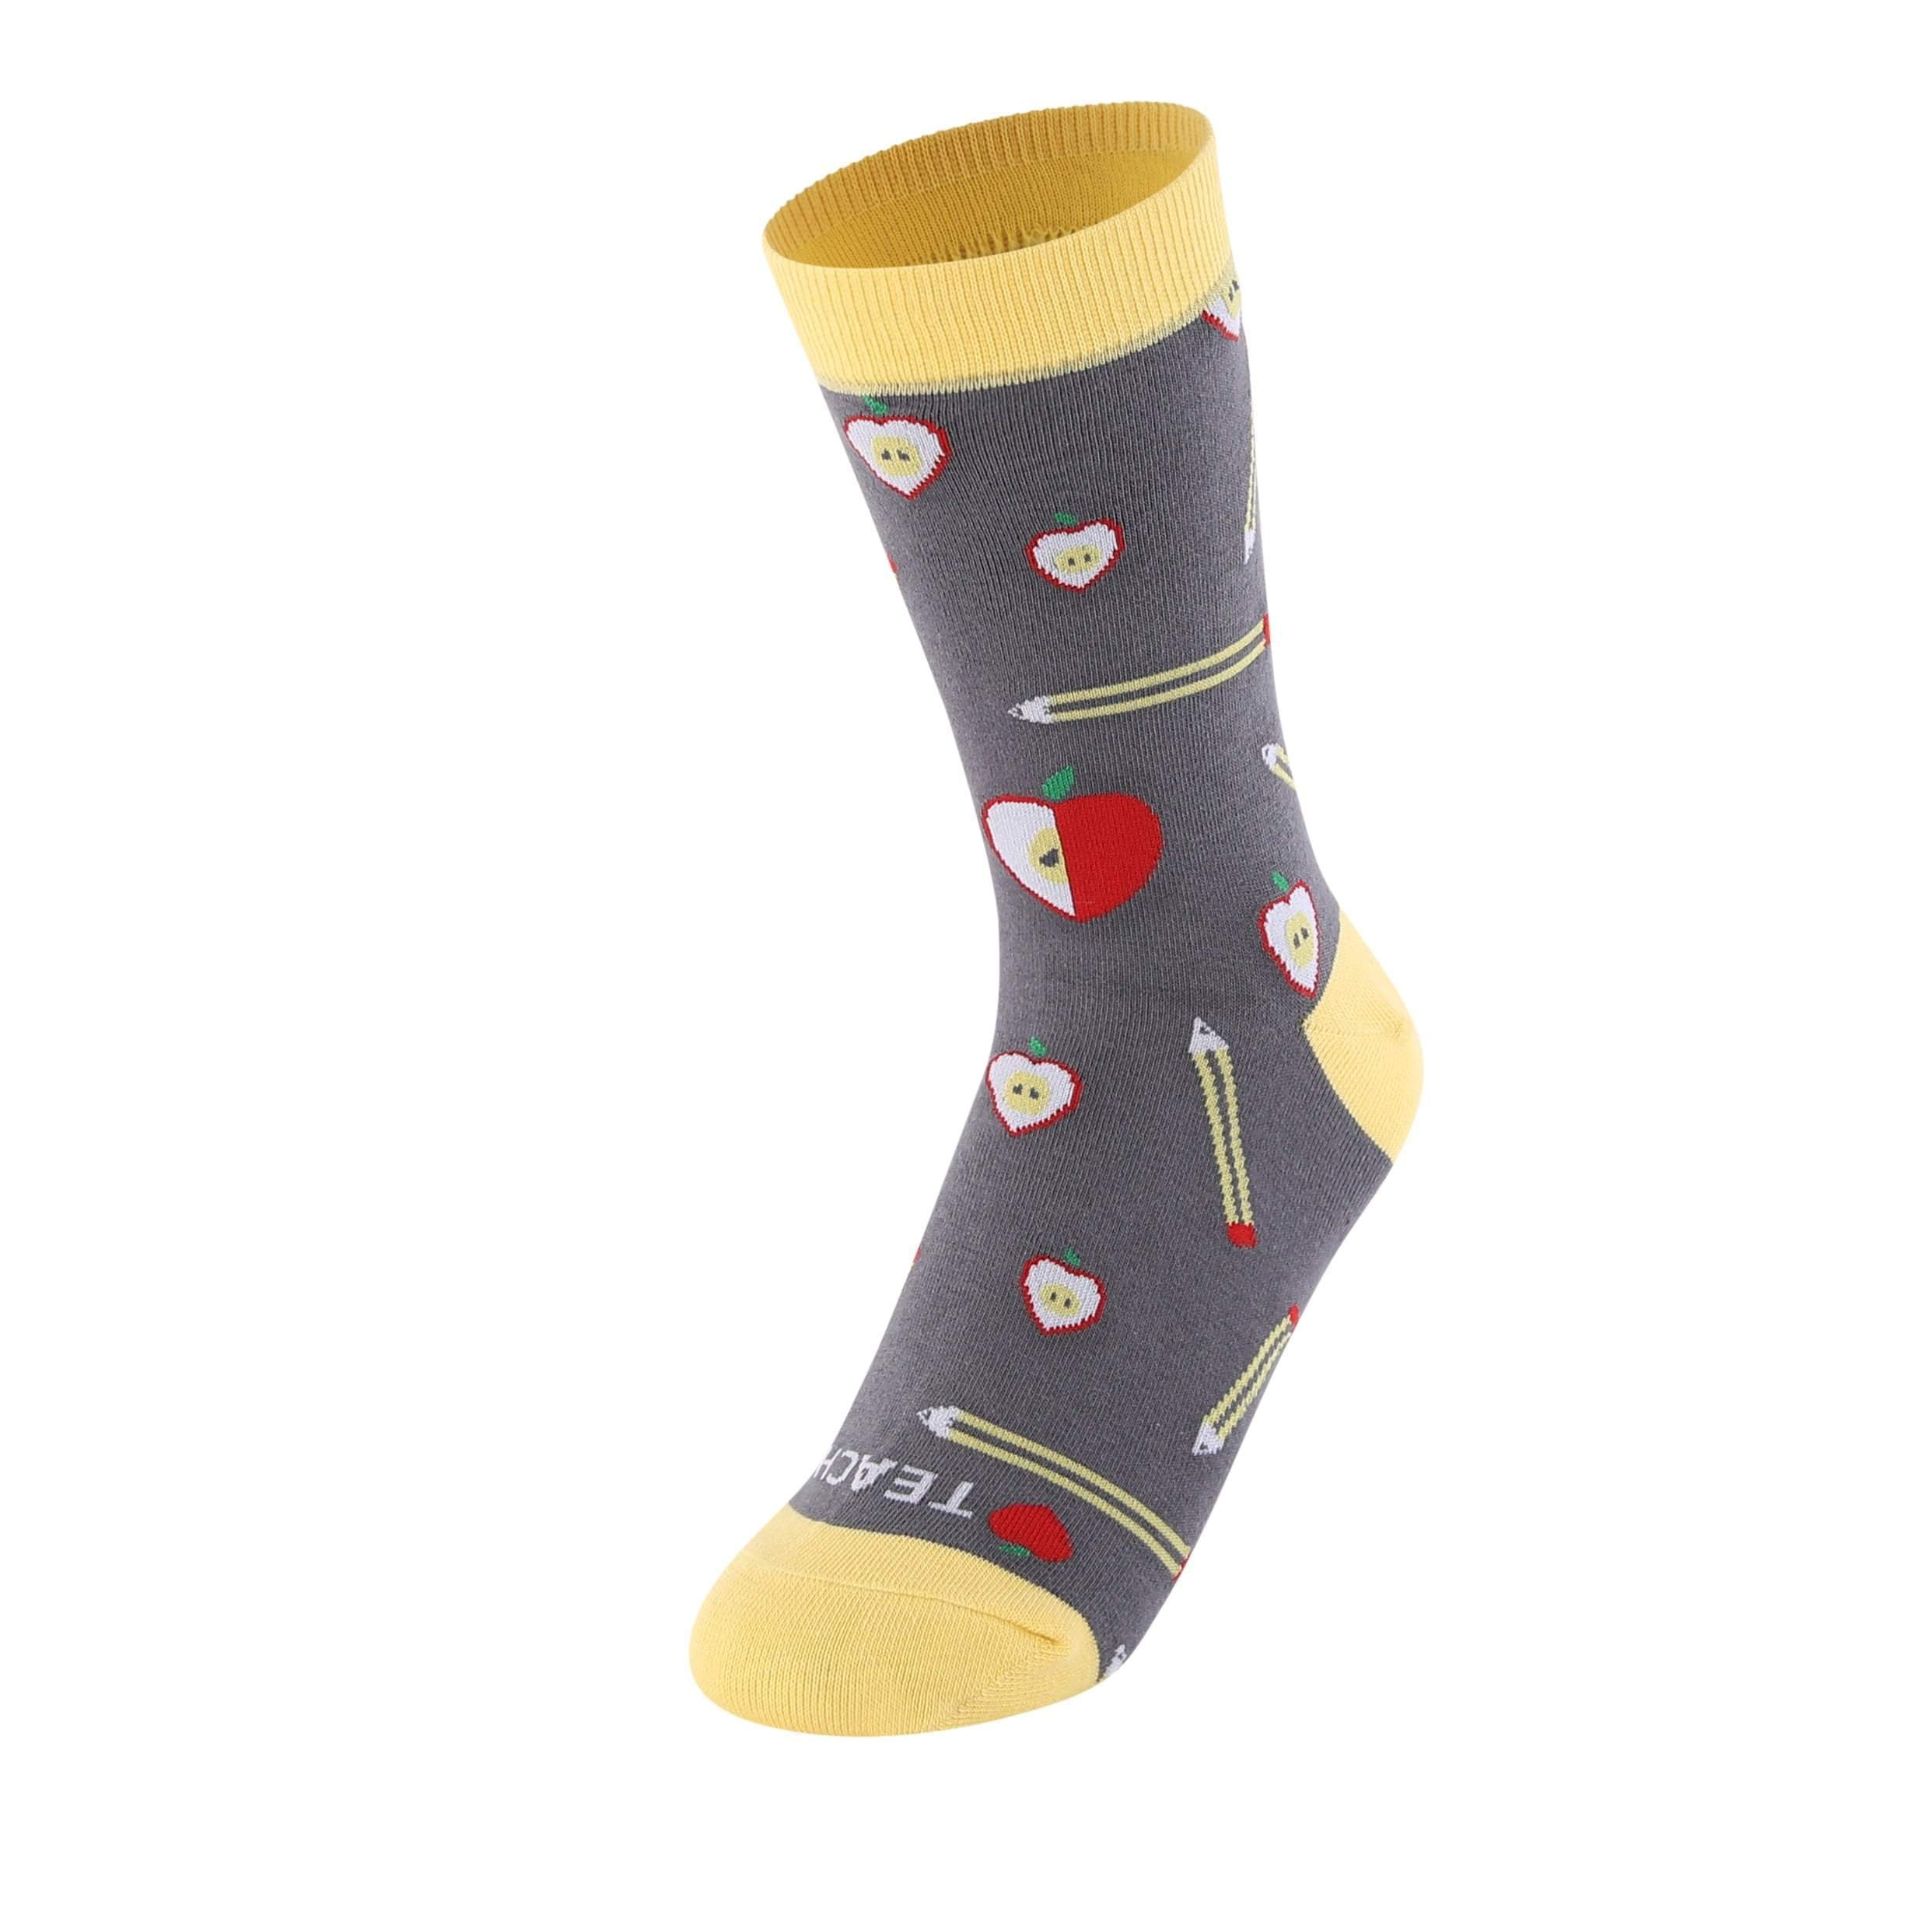 Love Teach Teacher Pattern Women's Crew Socks-UPKIWI